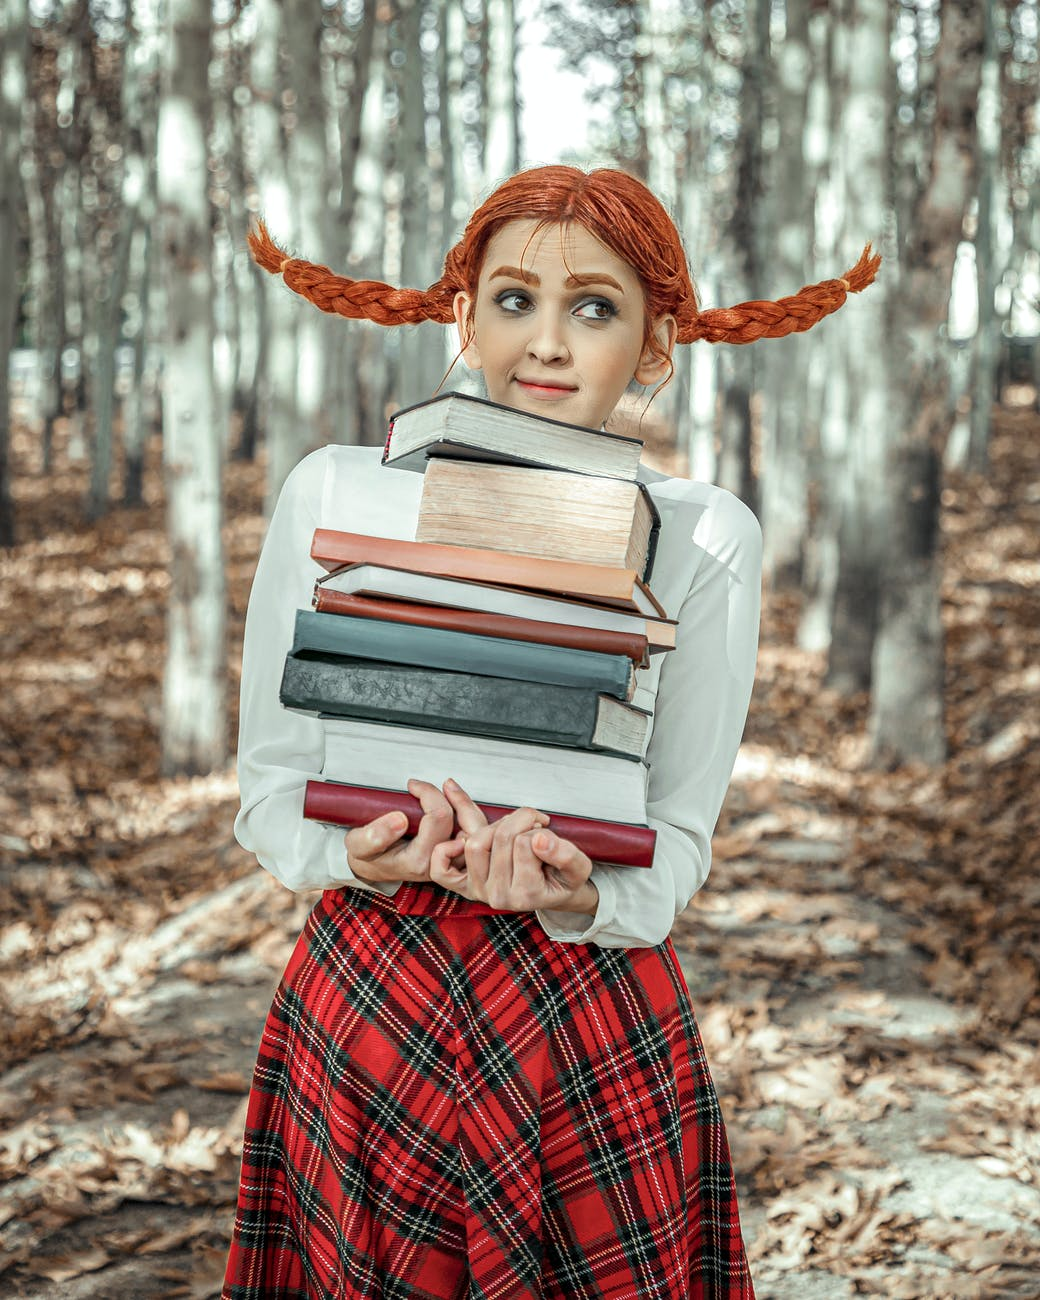 woman in red and white plaid dress shirt holding books